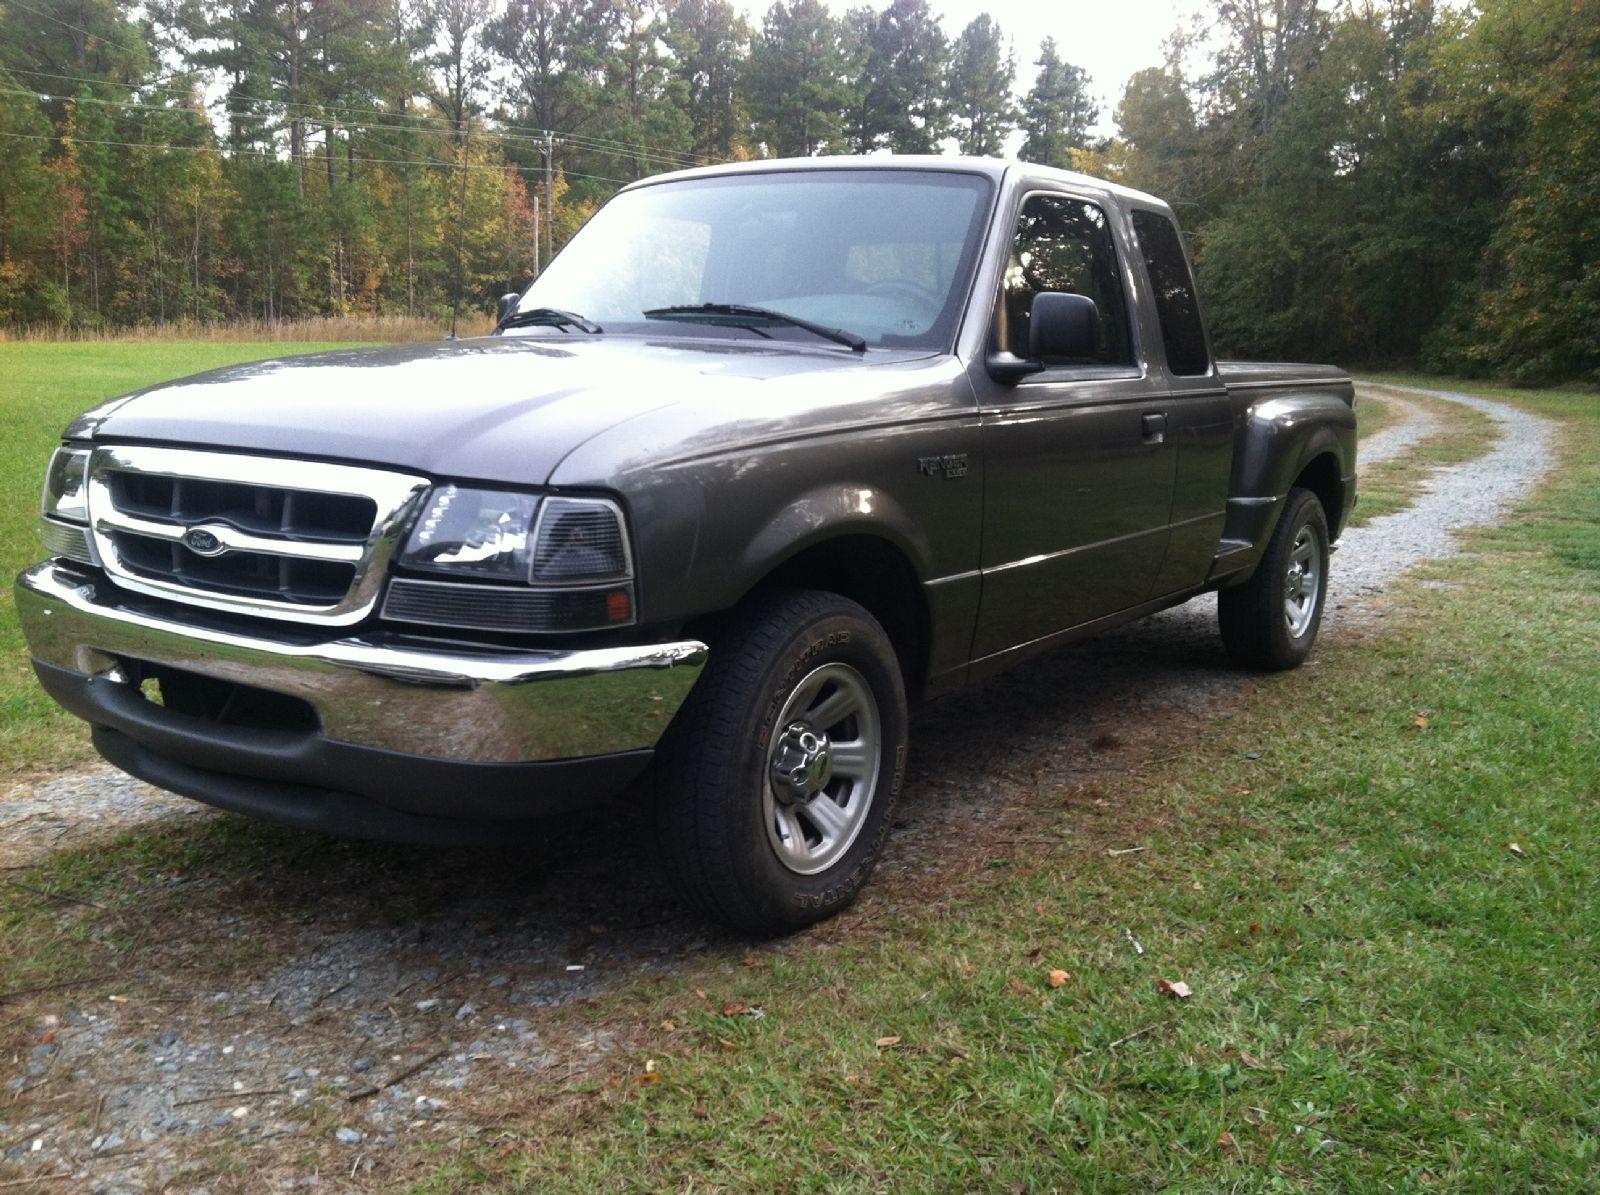 1999 ford ranger xlt for sale macon georgia modified car trader